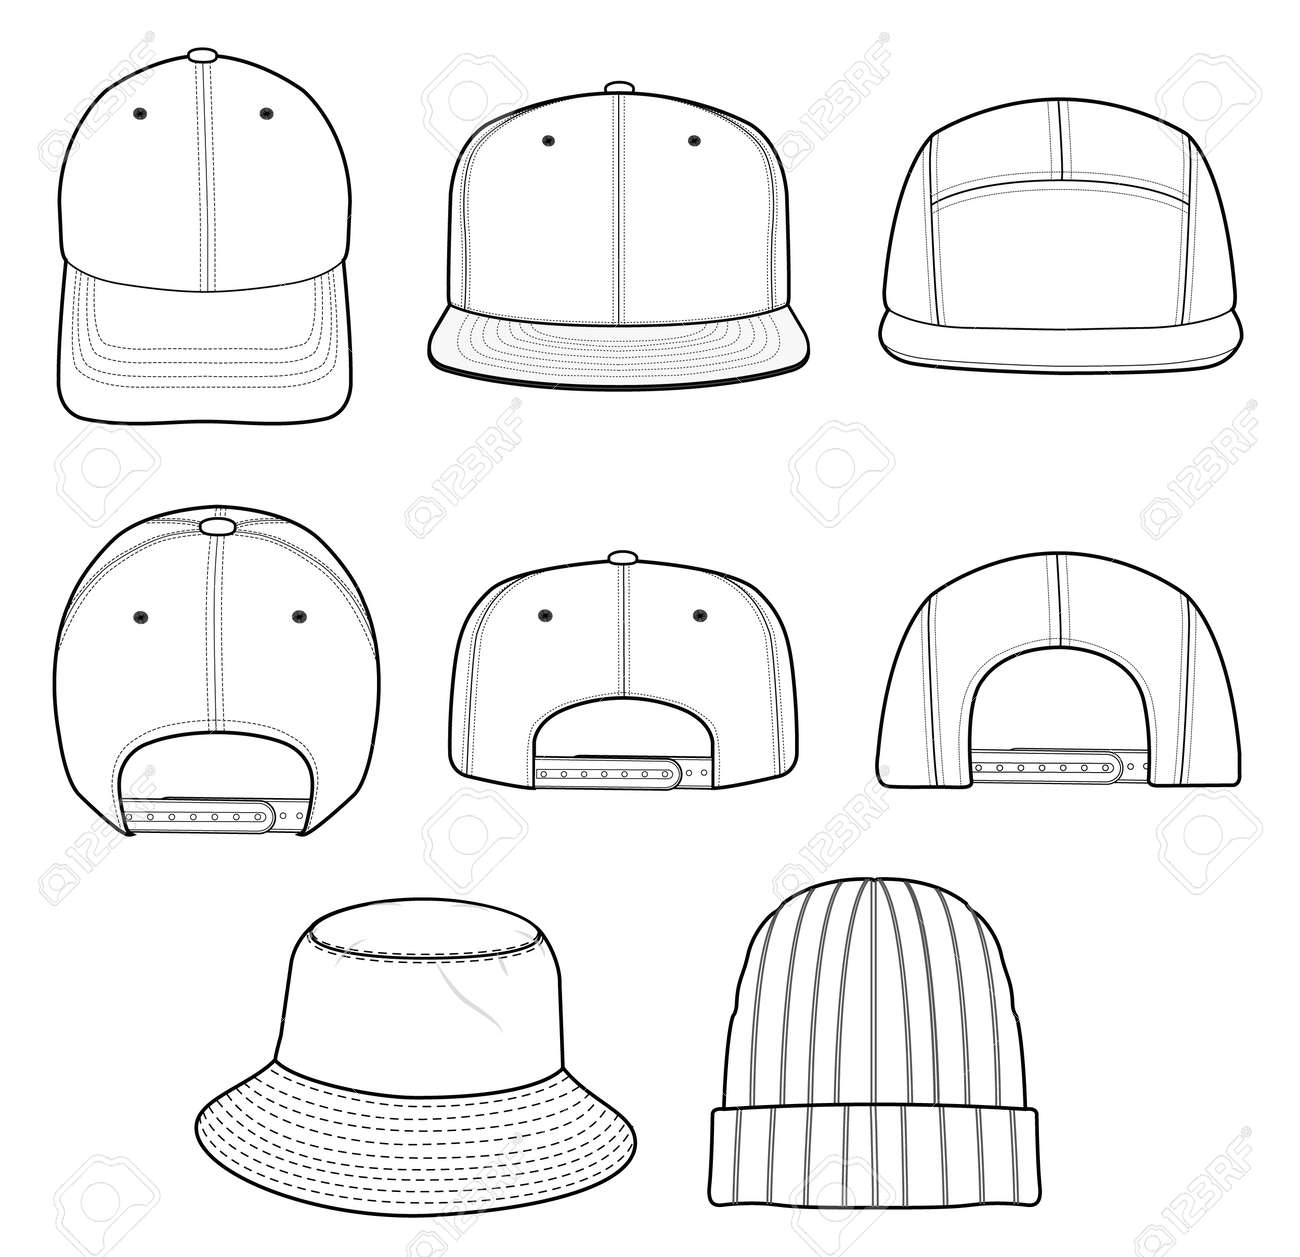 a3ec36877e8 Hat beanie design illustration flat sketches template Stock Vector -  113927455